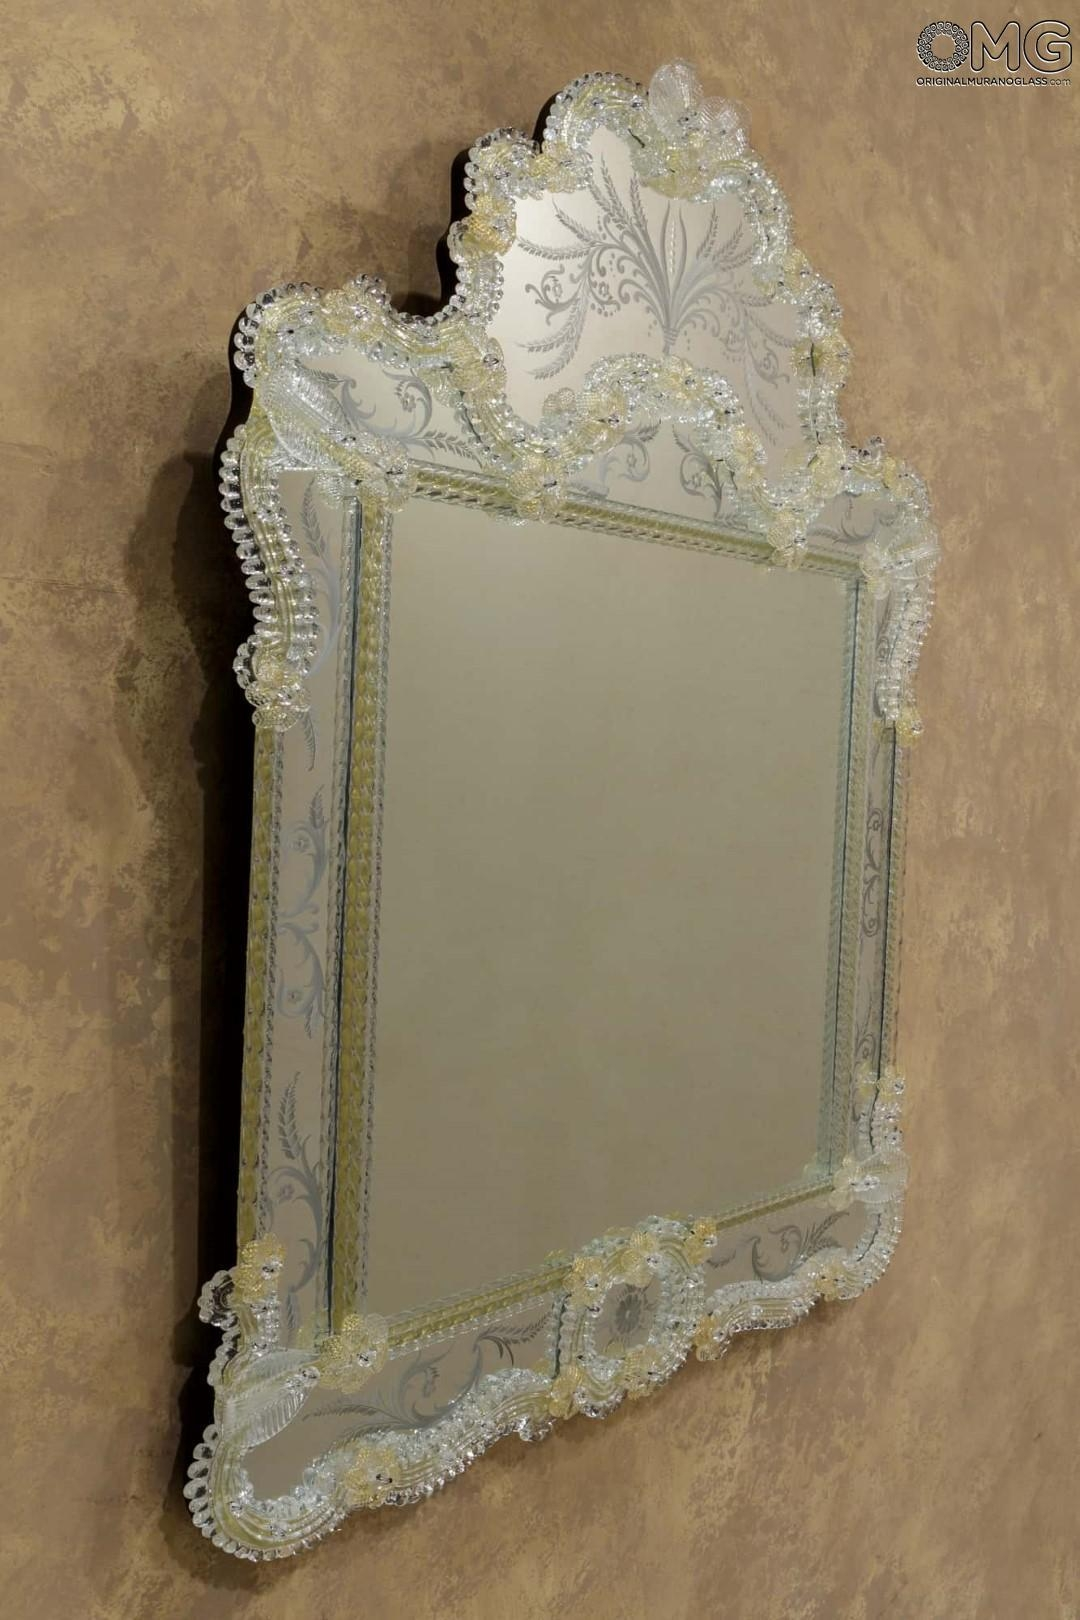 Ca Zanardi – Wall Venetian Mirror – Murano Glass And Gold 24Carats Inside Venetian Glass Mirrors Sale (View 17 of 20)